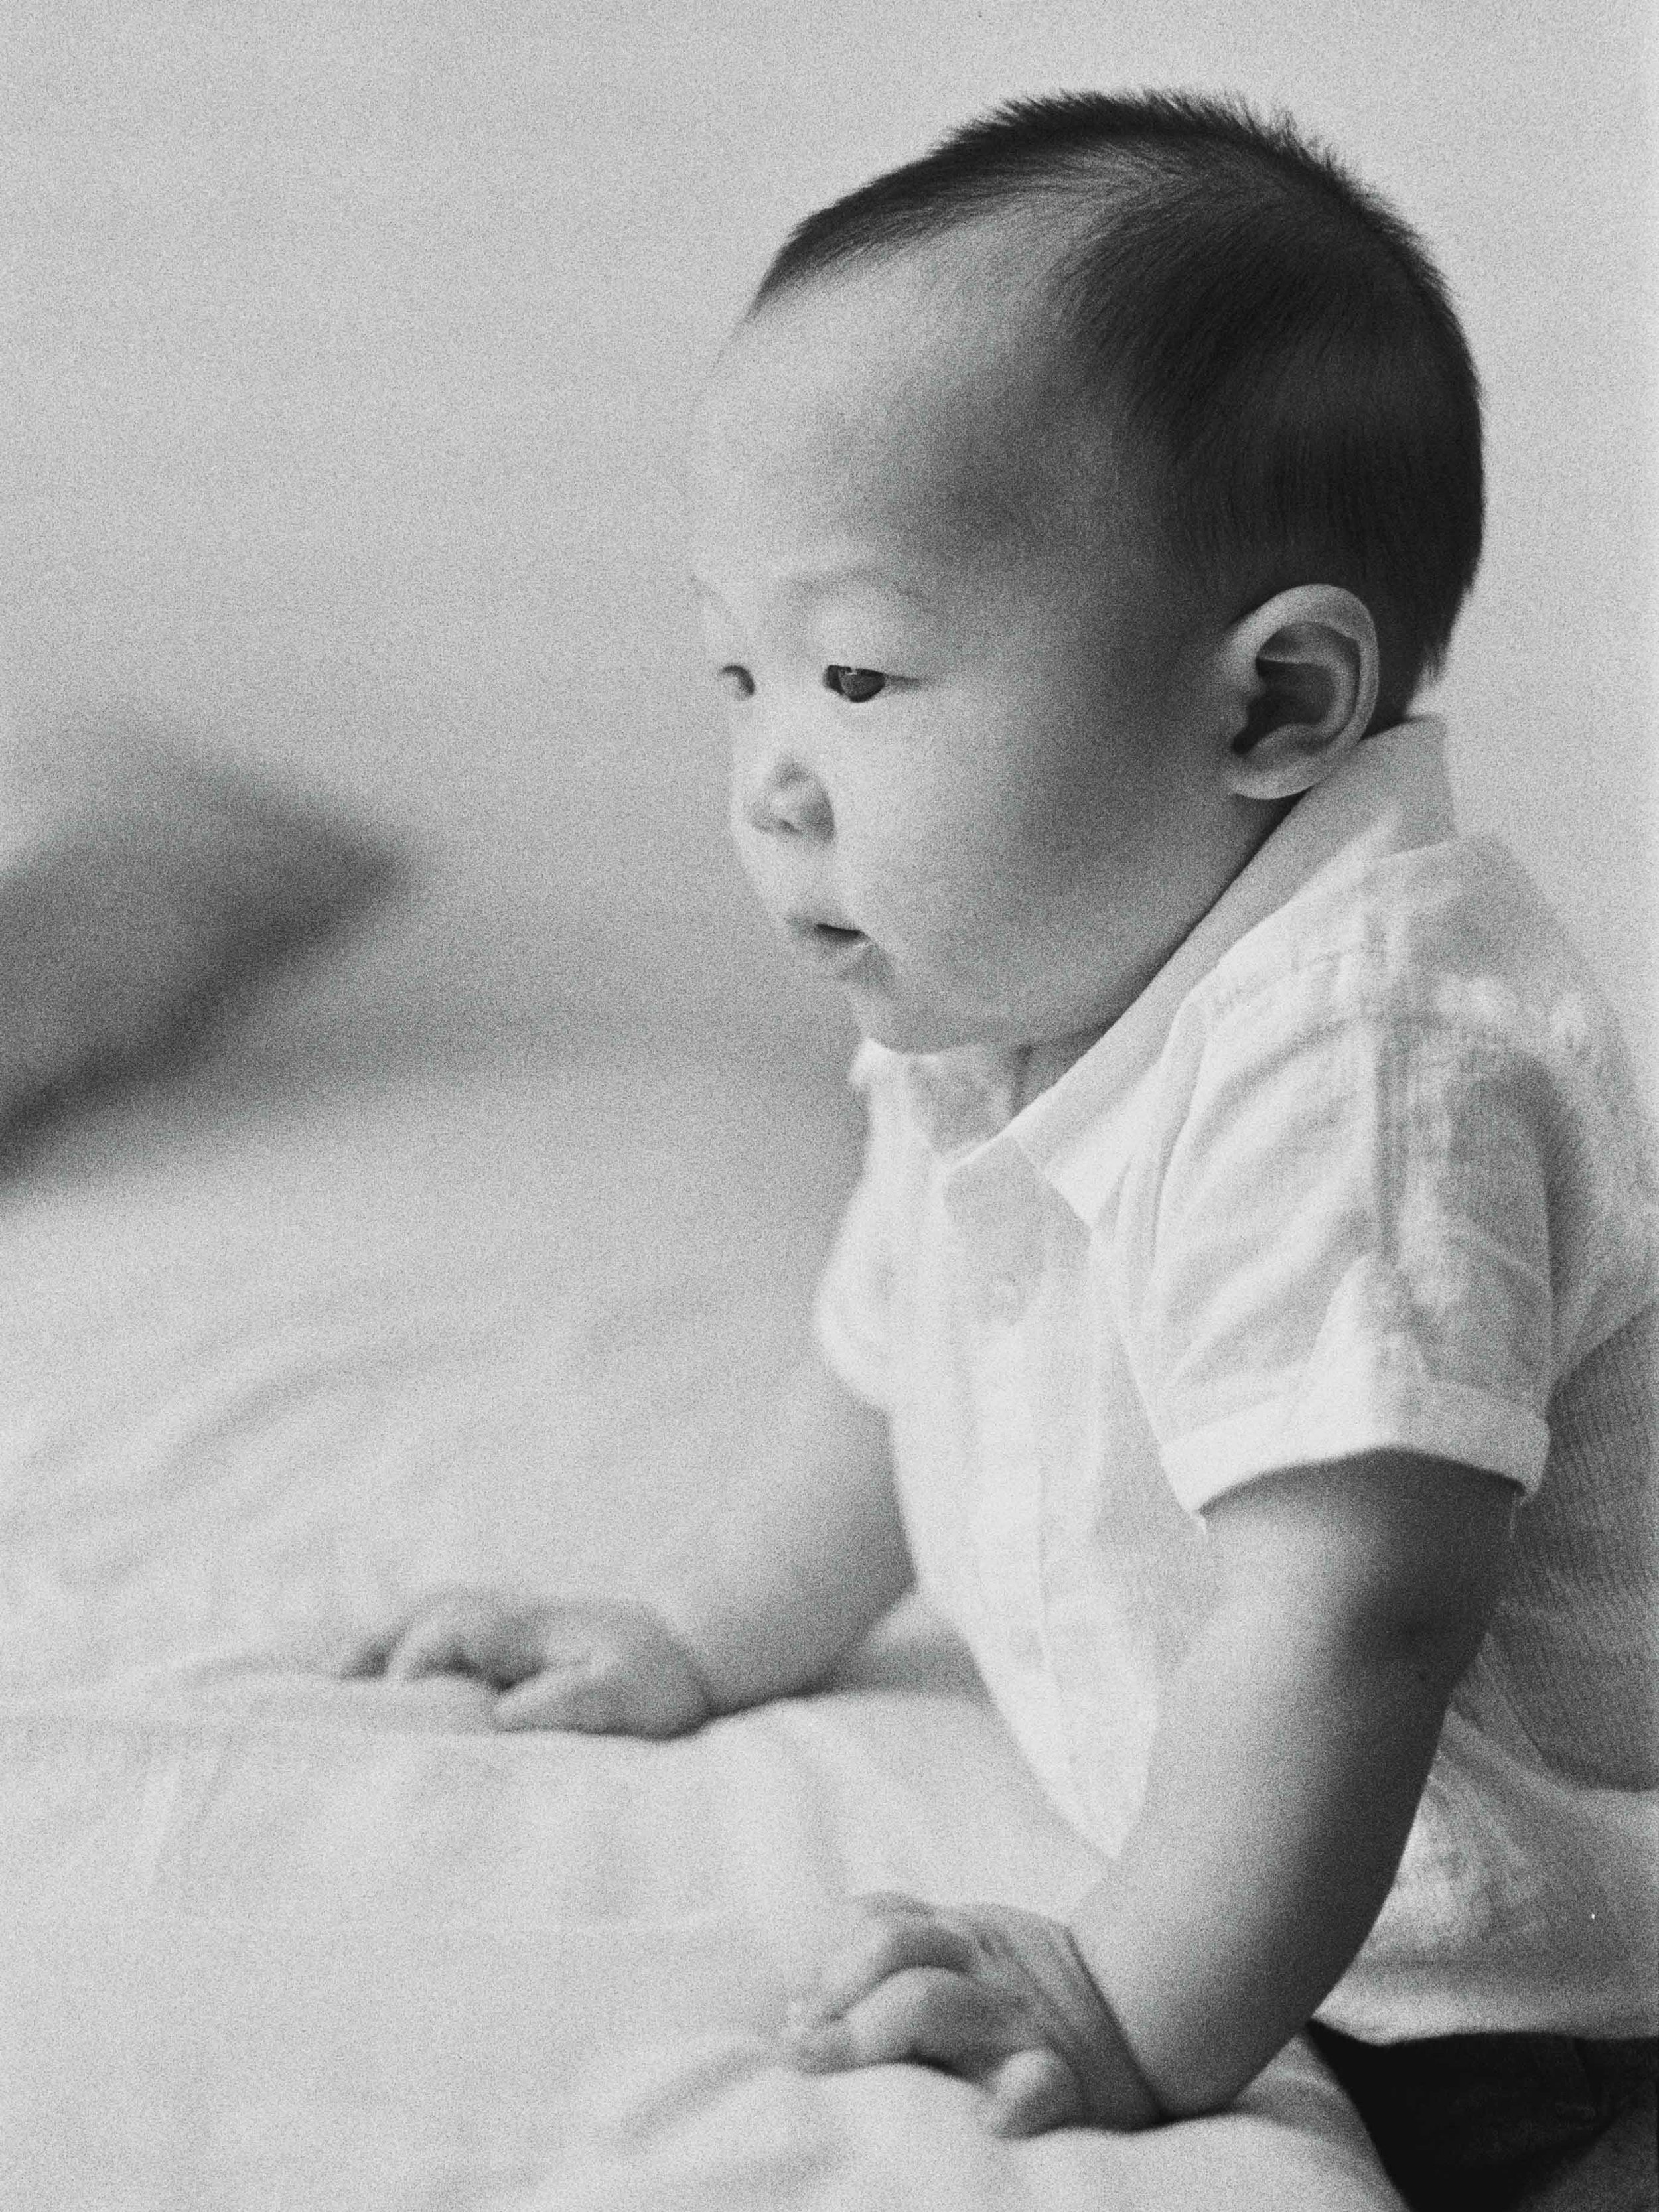 Cody-At Home-Simple-Baby Photography-8 Months Old-Studio June-Film Photography-Jakarta-53.jpg